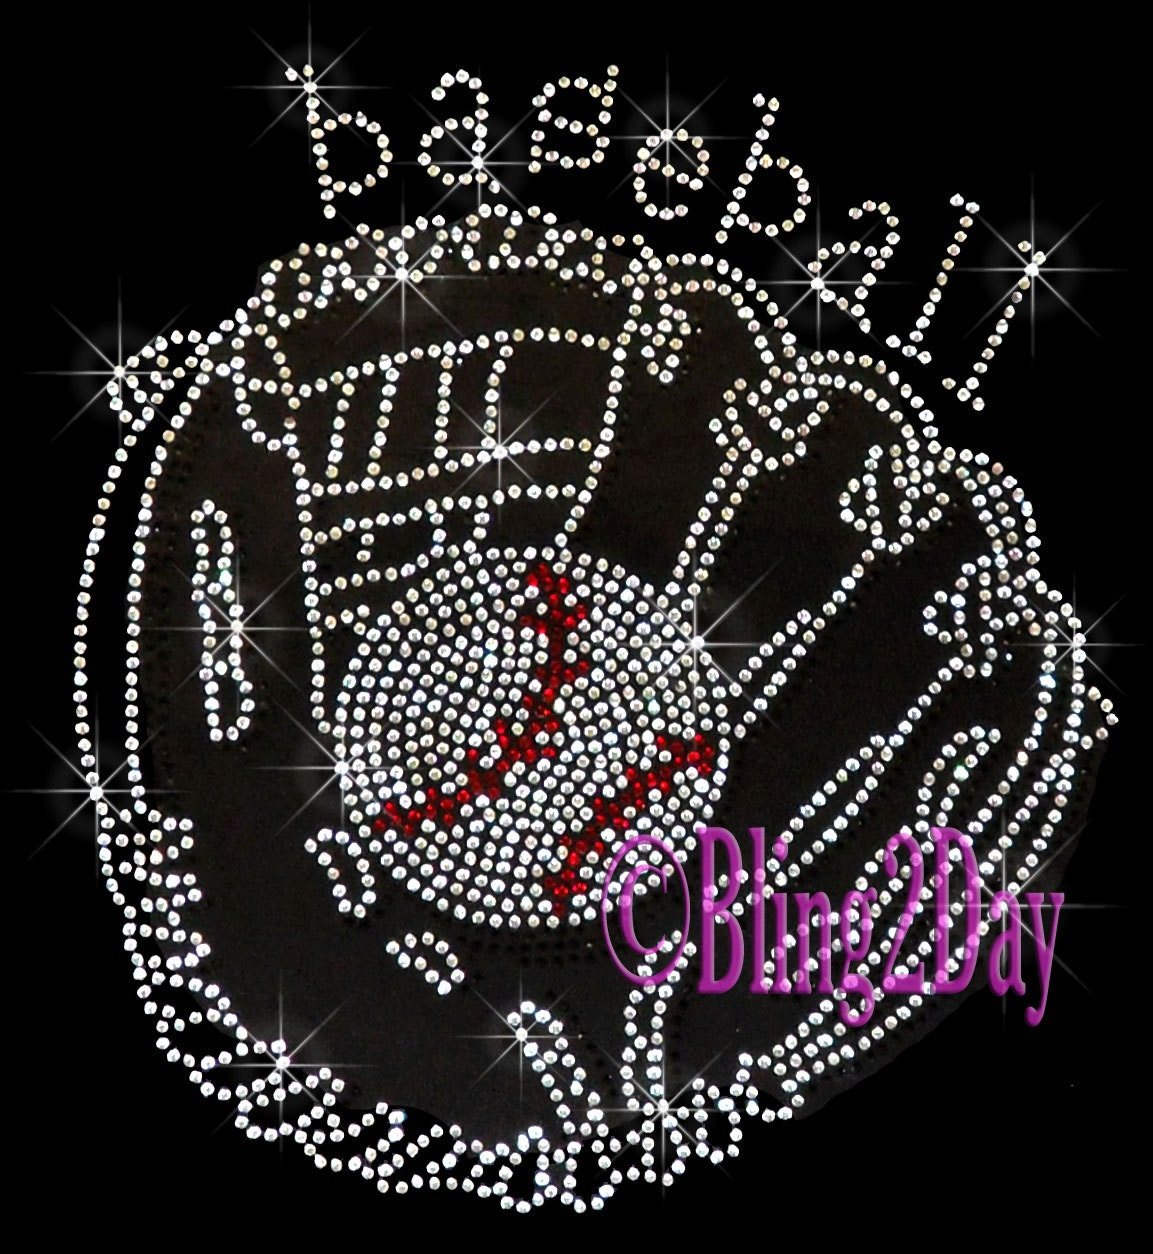 baseball glove mitt iron on rhinestone transfer bling hot. Black Bedroom Furniture Sets. Home Design Ideas